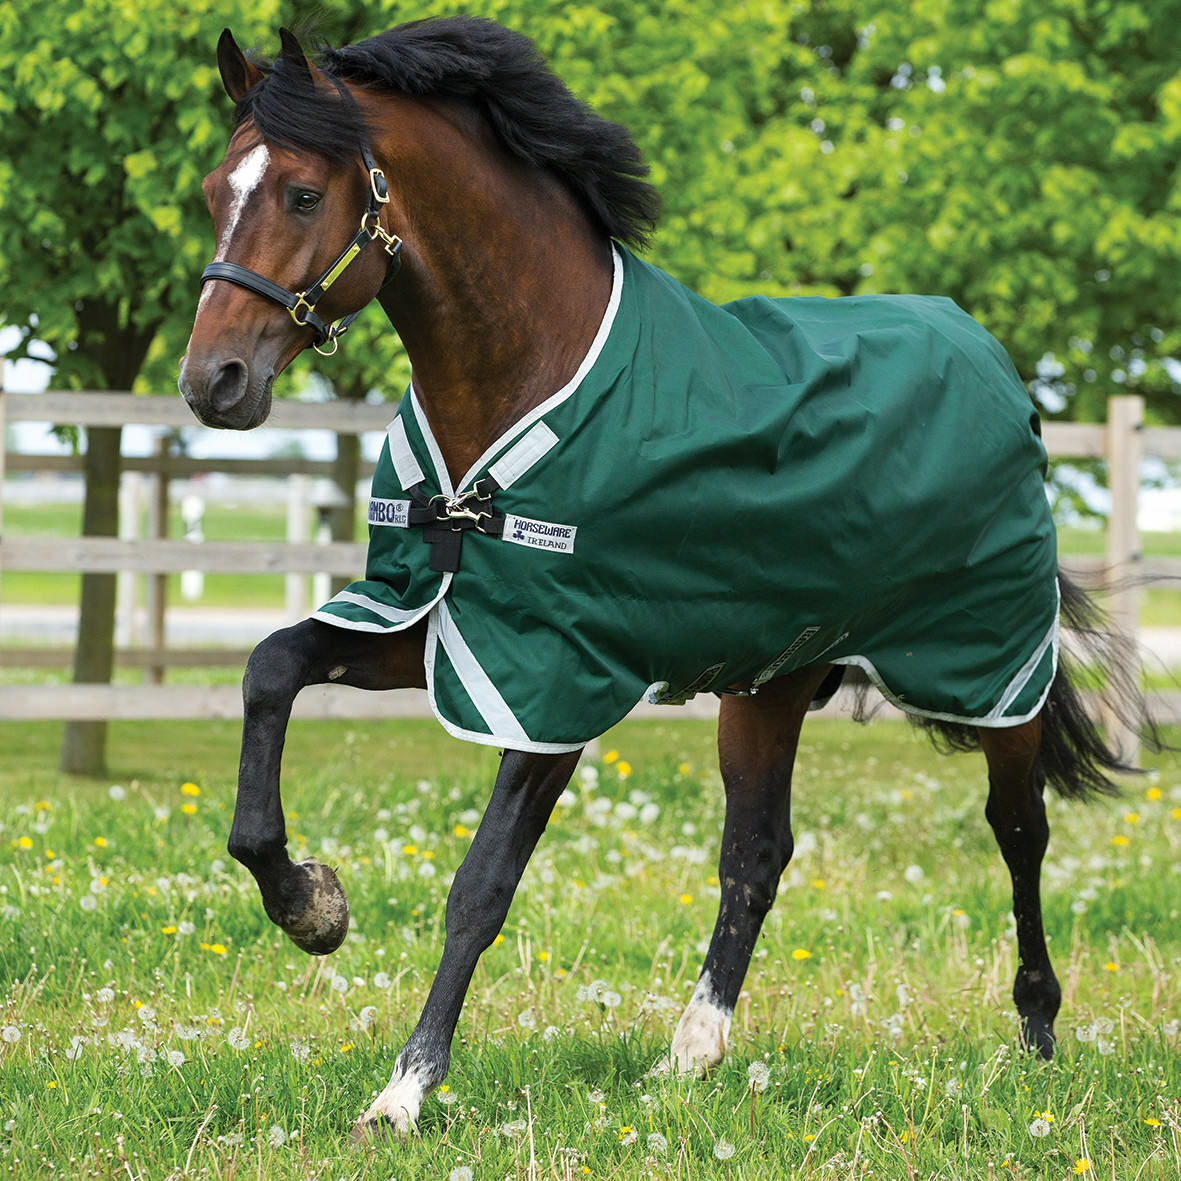 Rambo Heavy Original Turnout Blanket w Leg Arches (400g) - Green - Differ Sizes